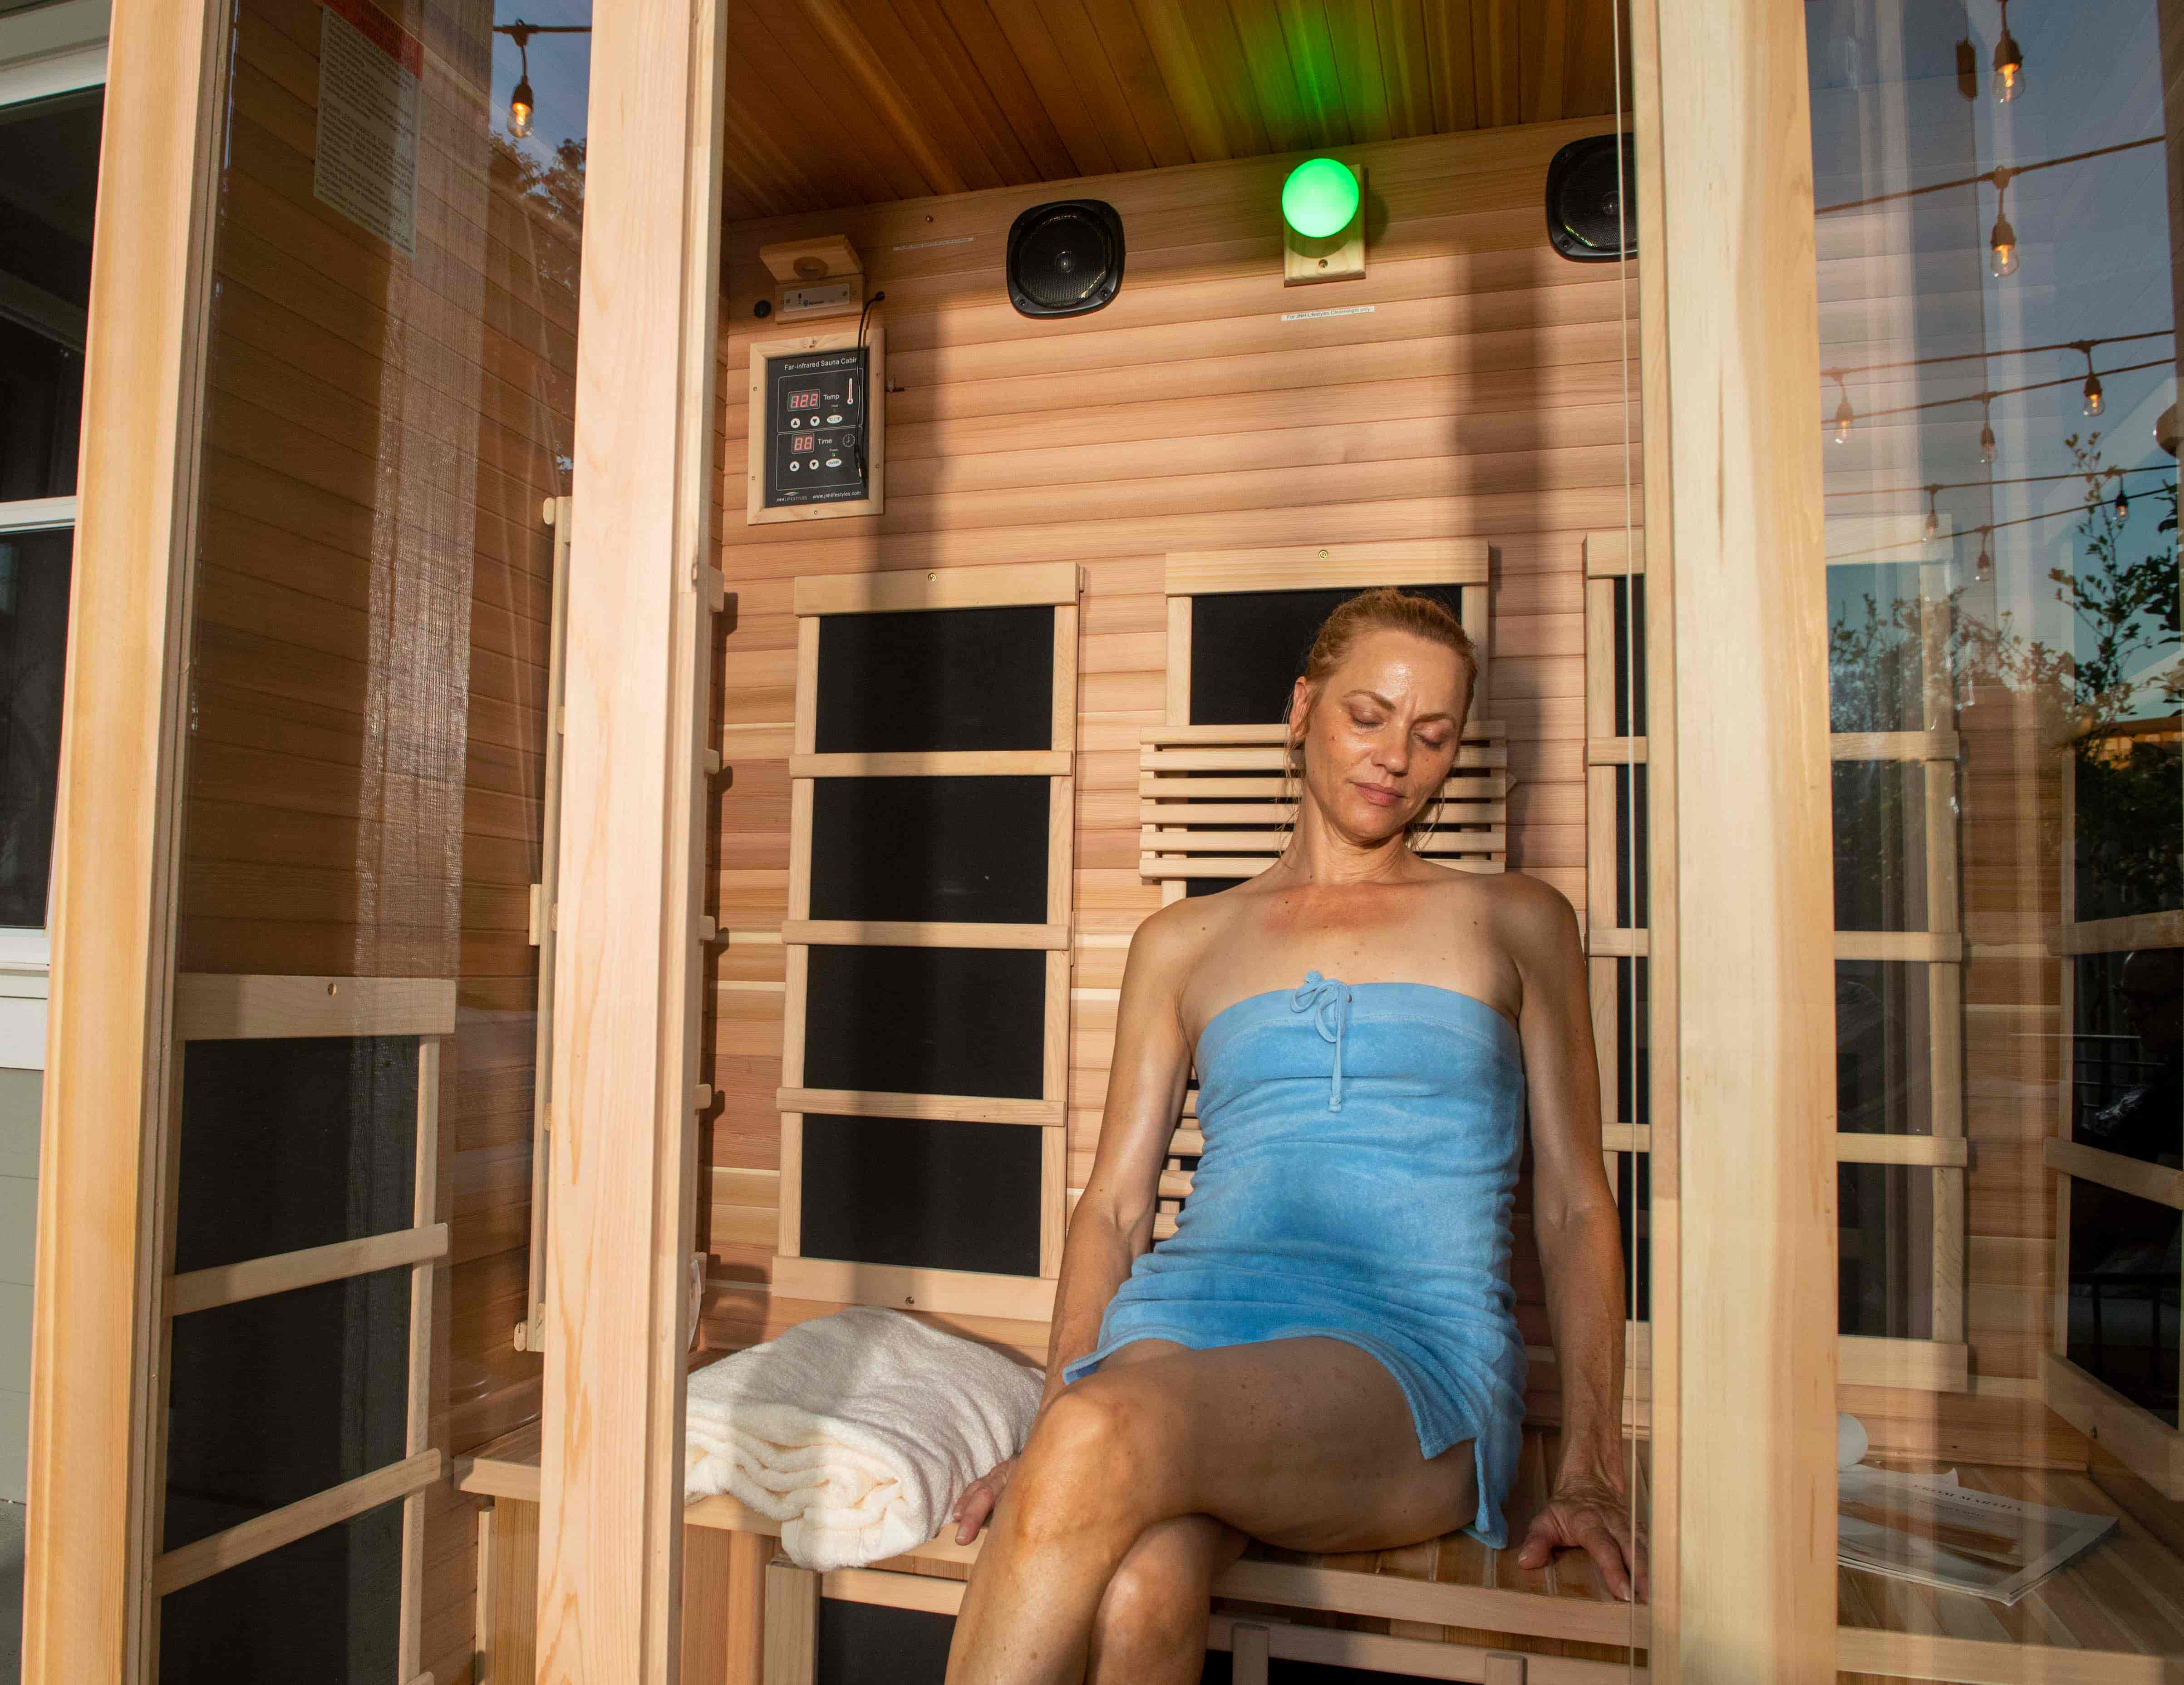 woman using an infrared sauna the freedom 3 person far infrared sauna by jnh lifestyles